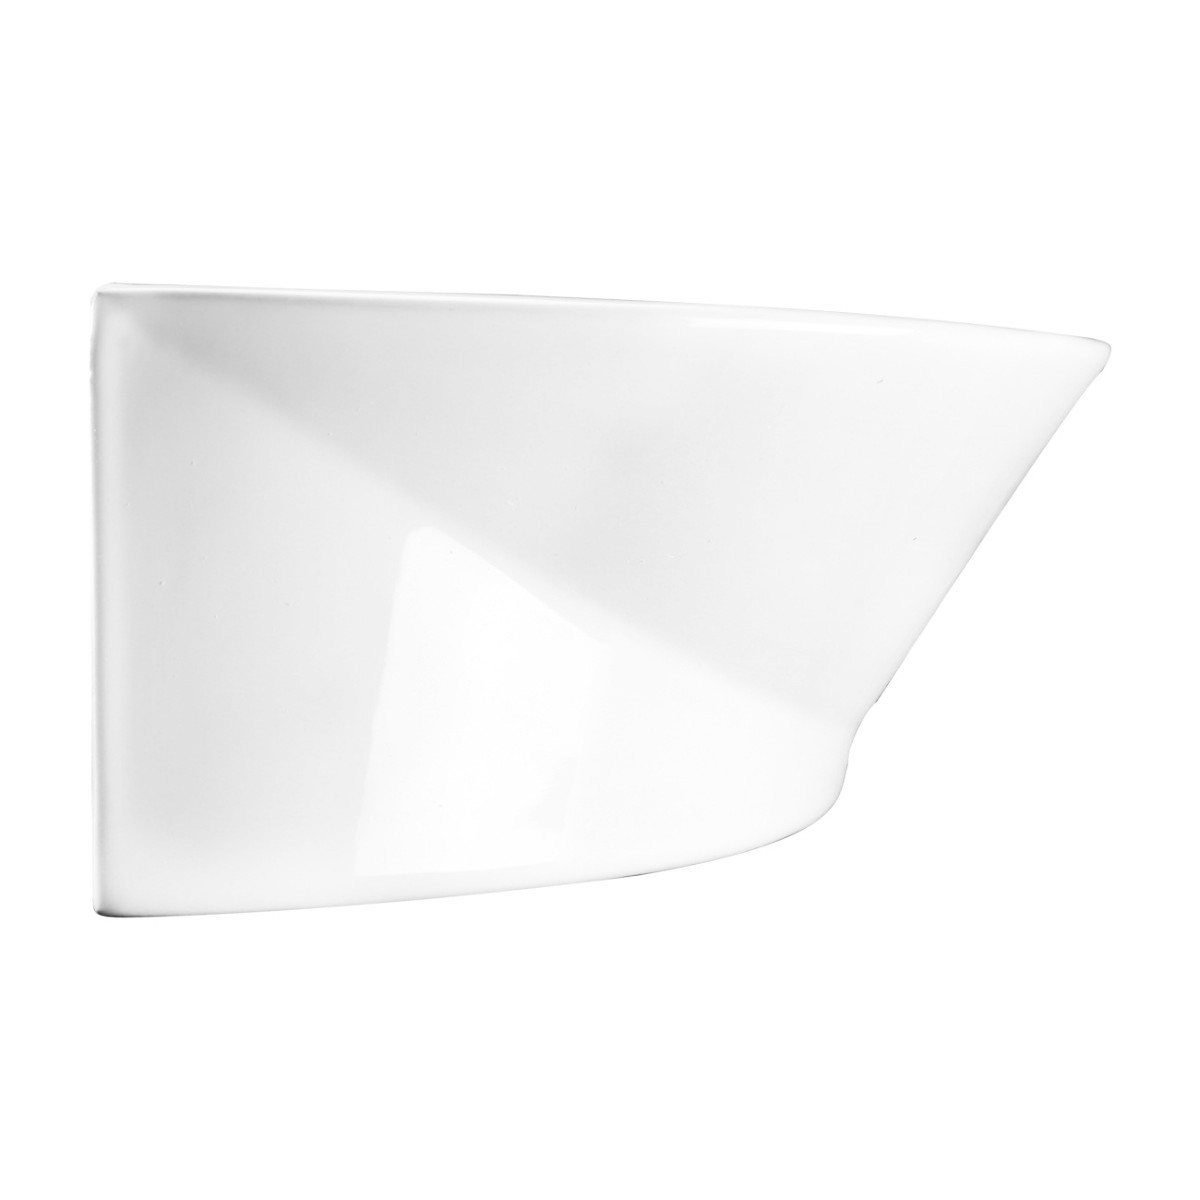 White Small Wall Mount Sink with Single Faucet Hole Overflow Bathroom